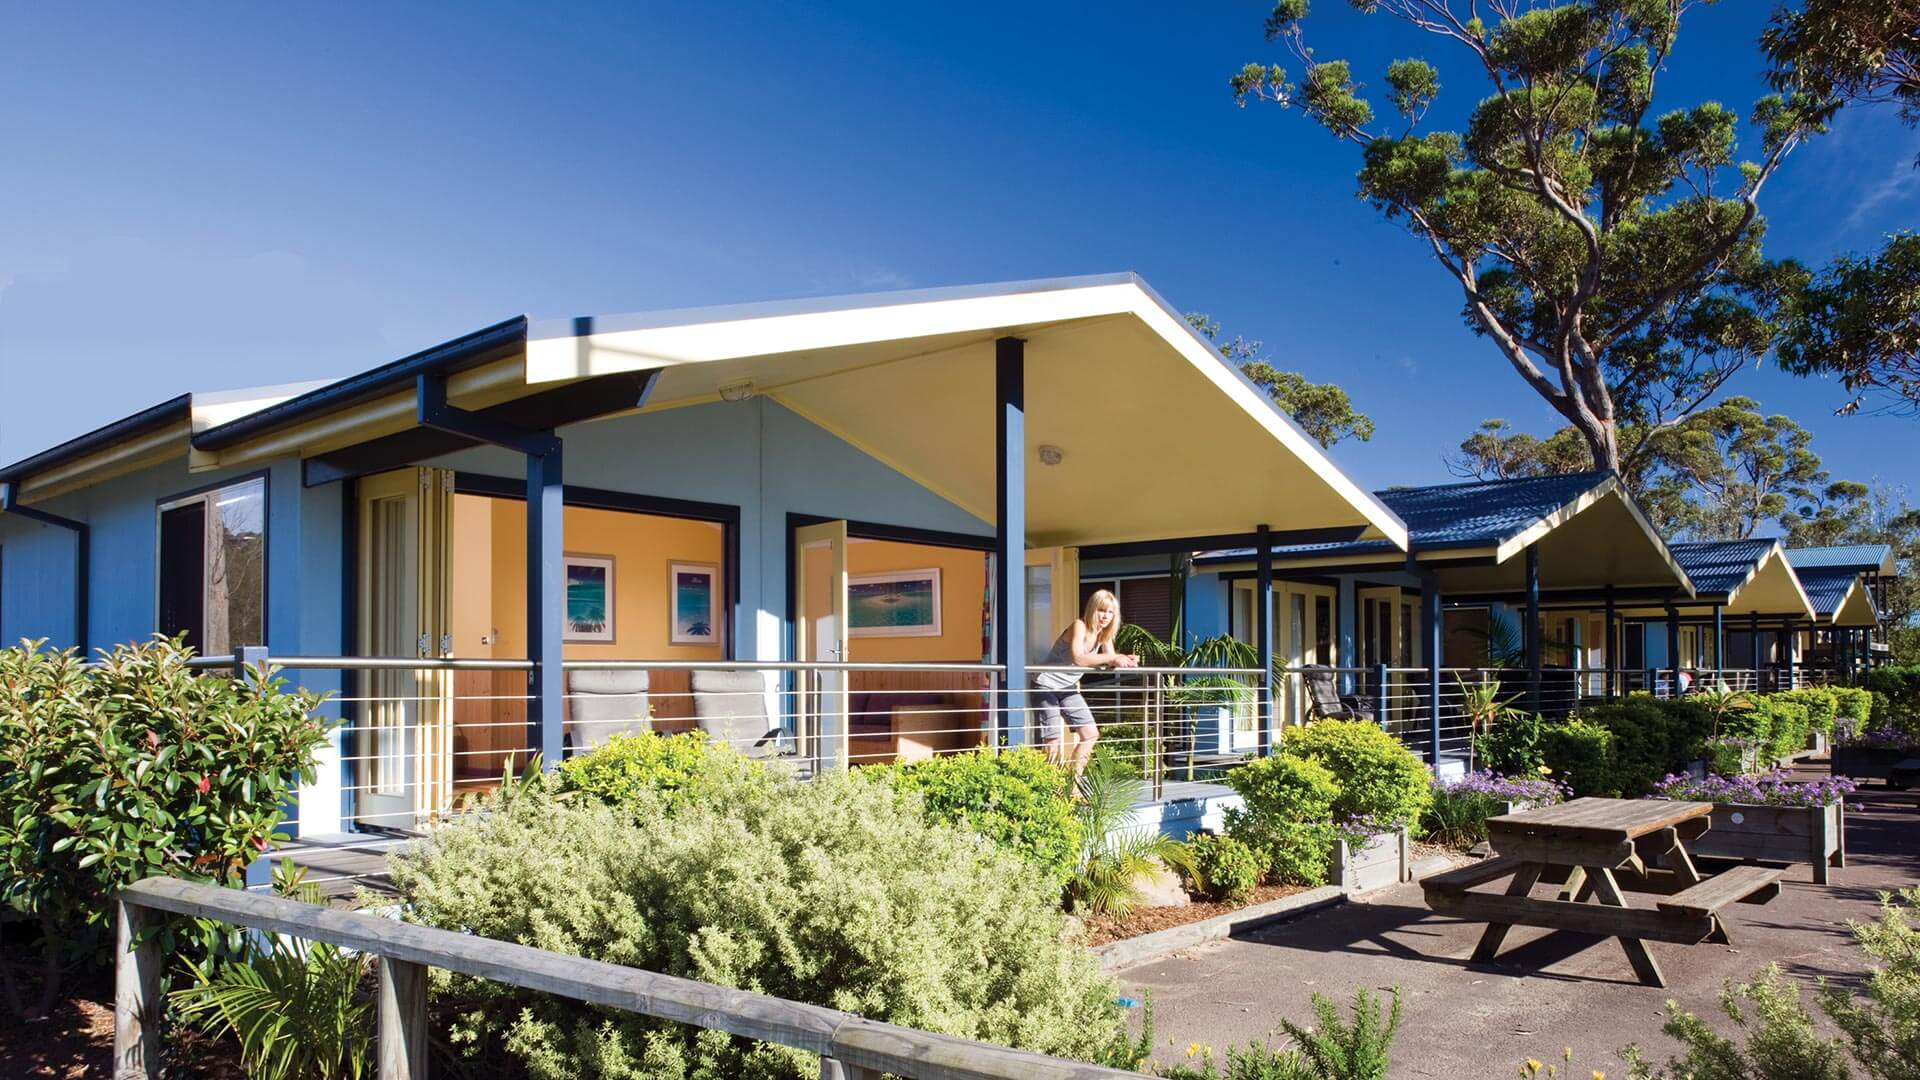 Seabreeze Villas at NRMA Ocean Beach Holiday Park